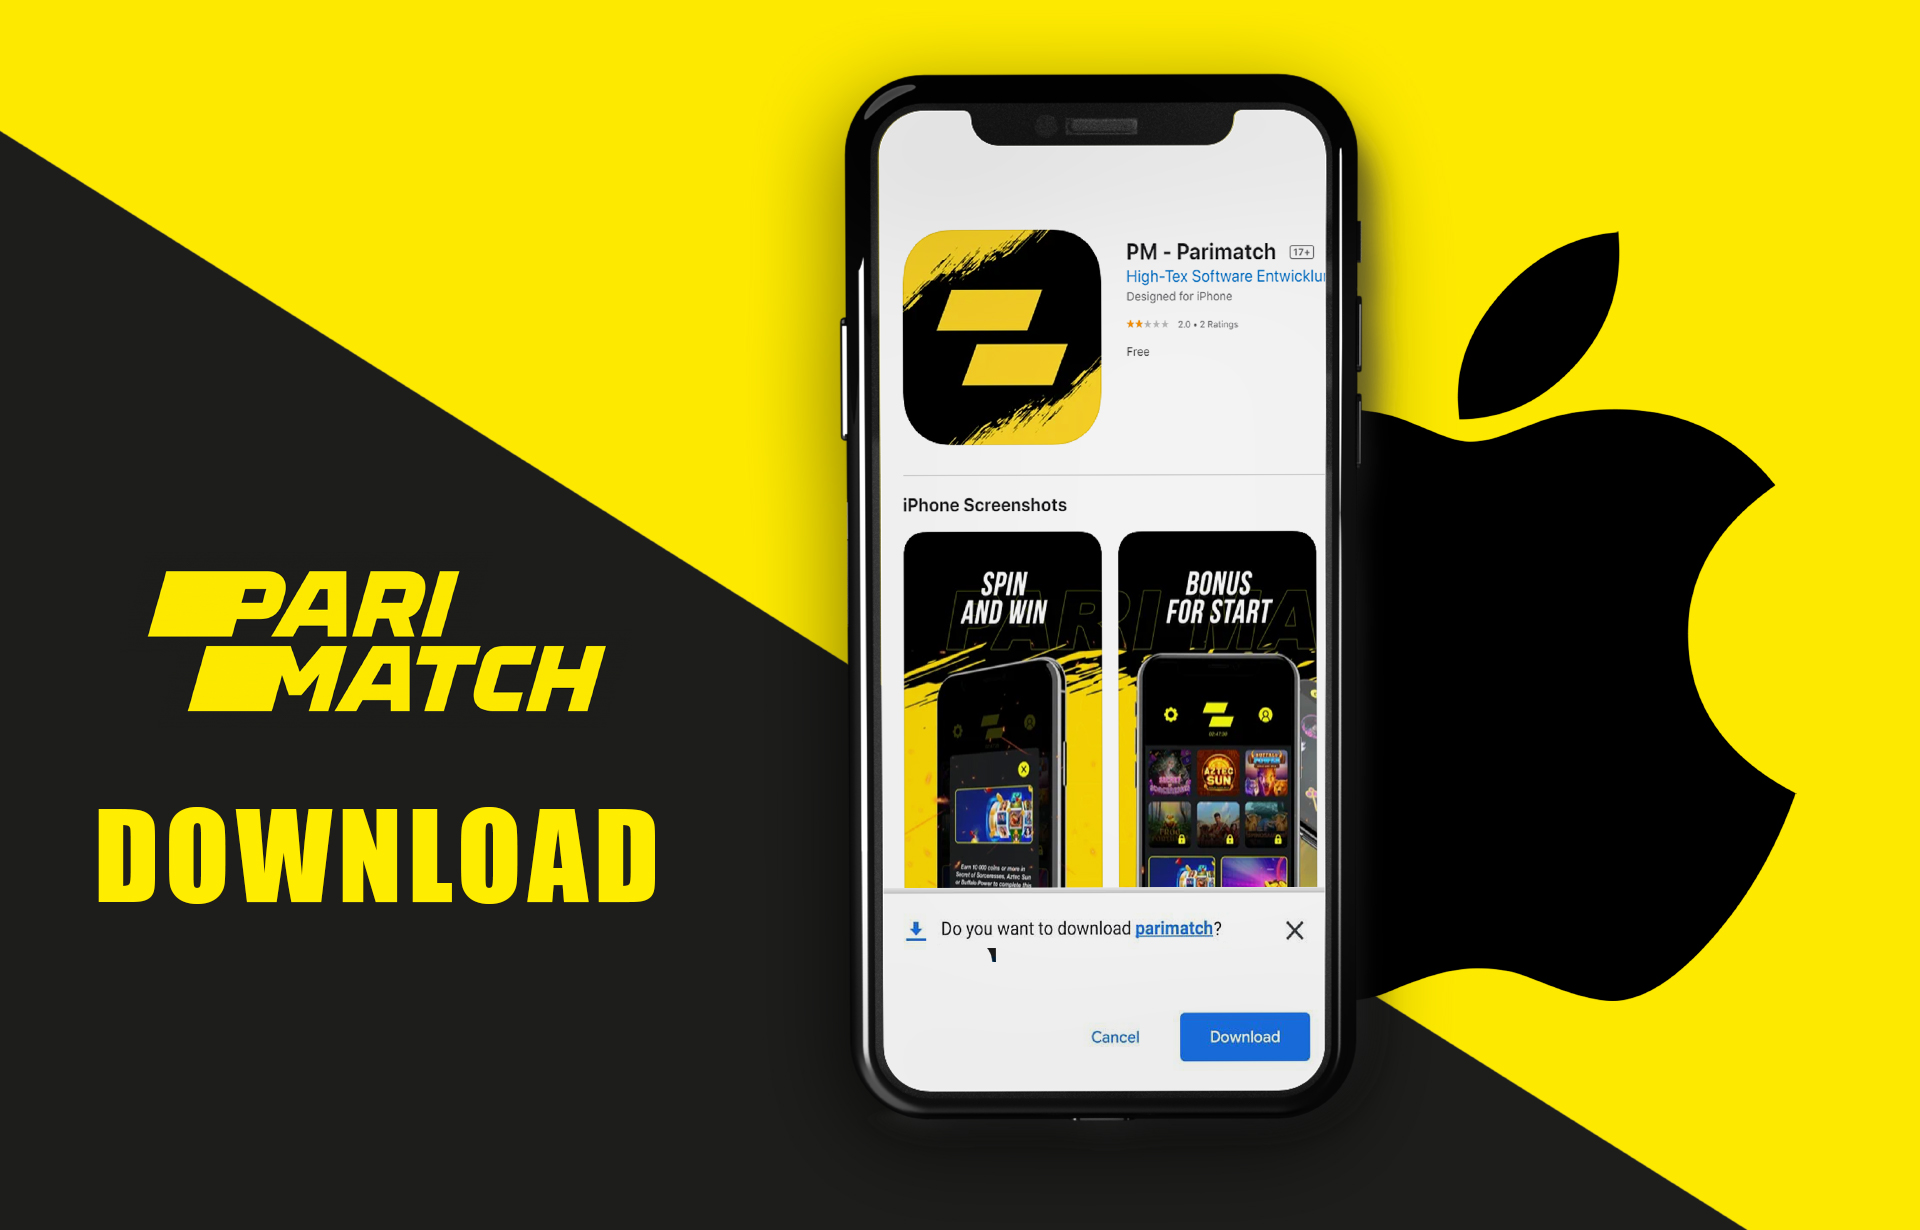 Download the app from the App Store.